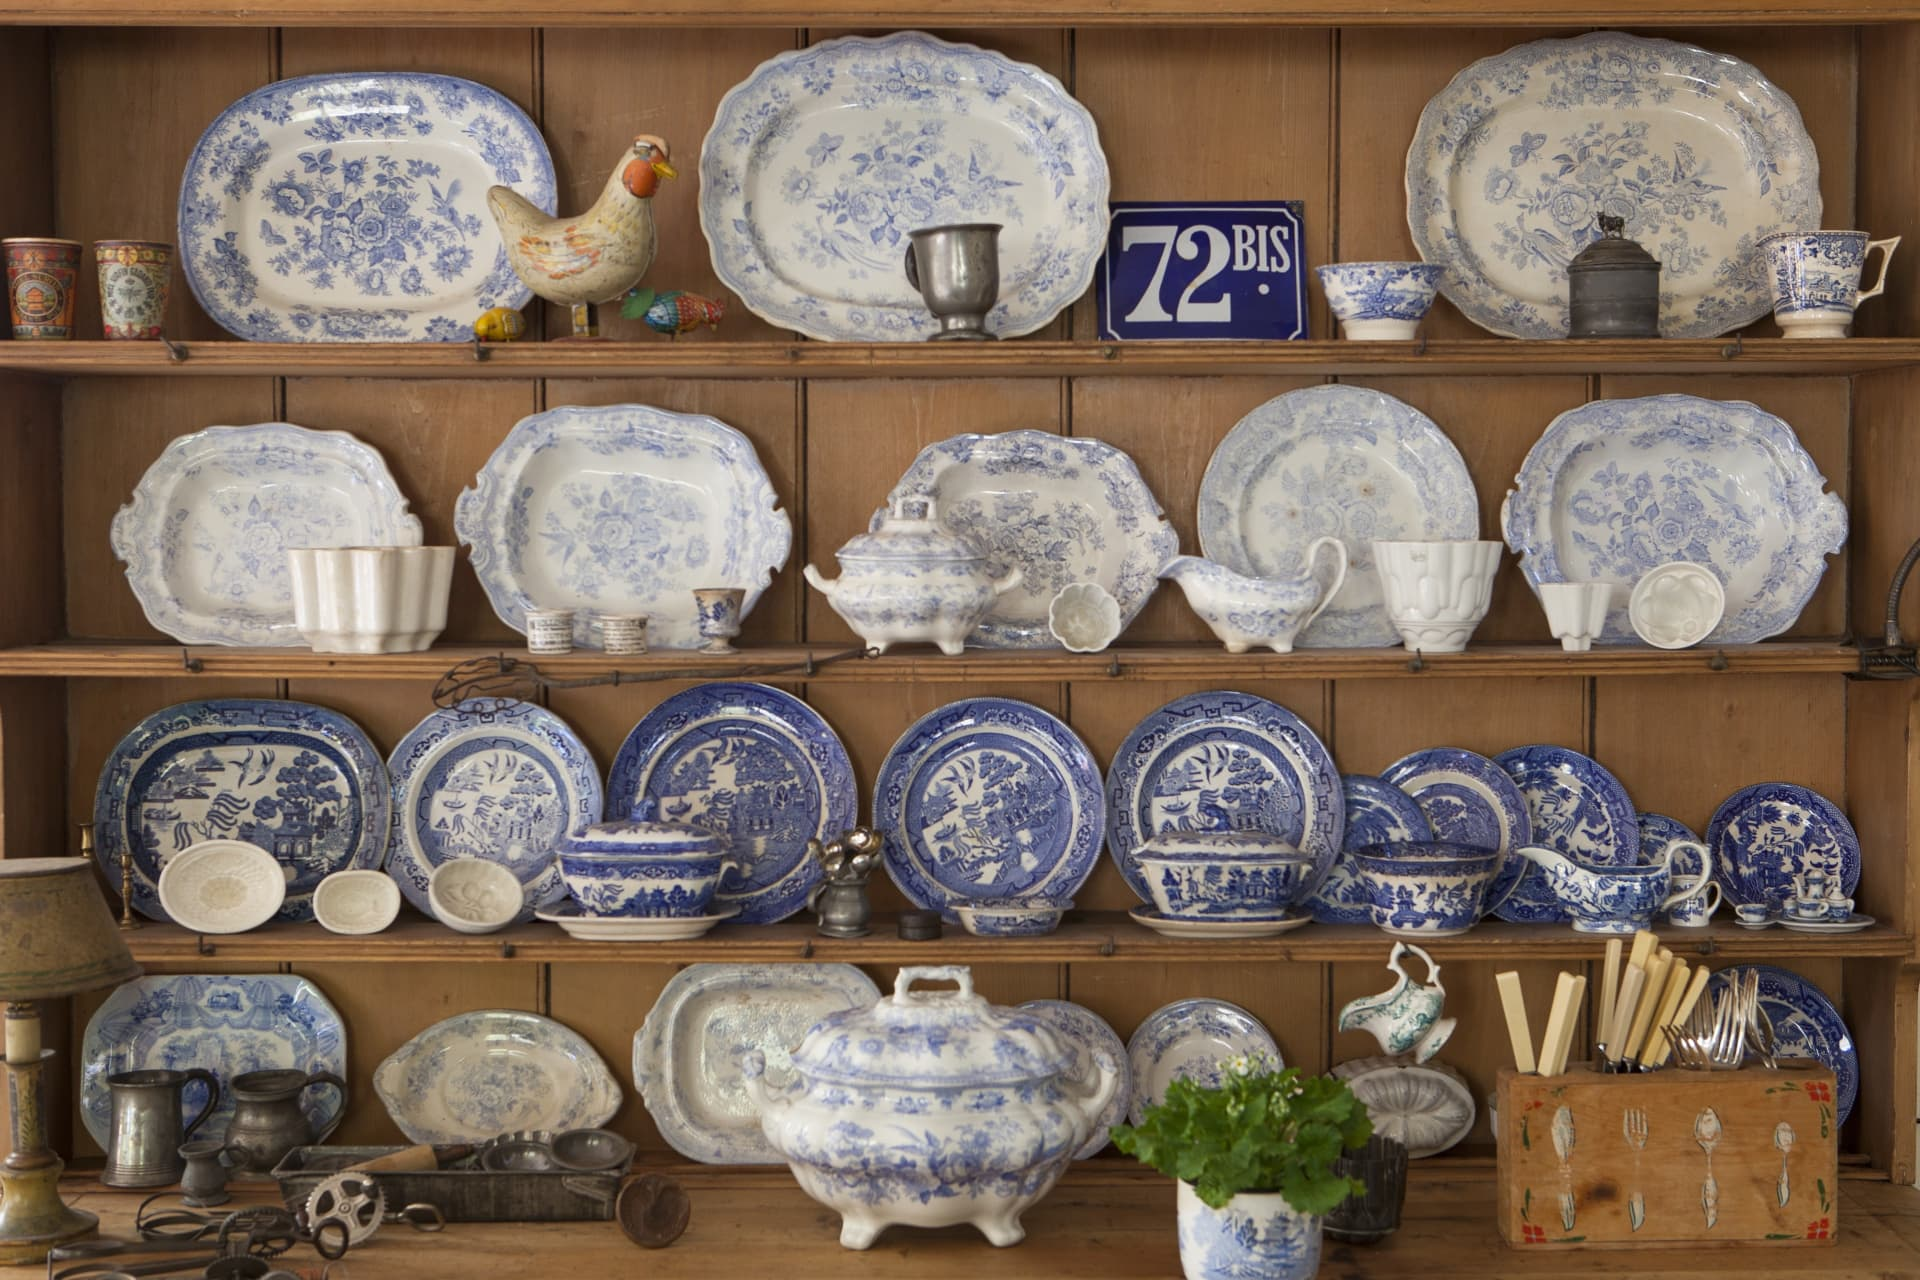 The large antique pine dresser holds a small part of Glenny's large collection of blue and white china.